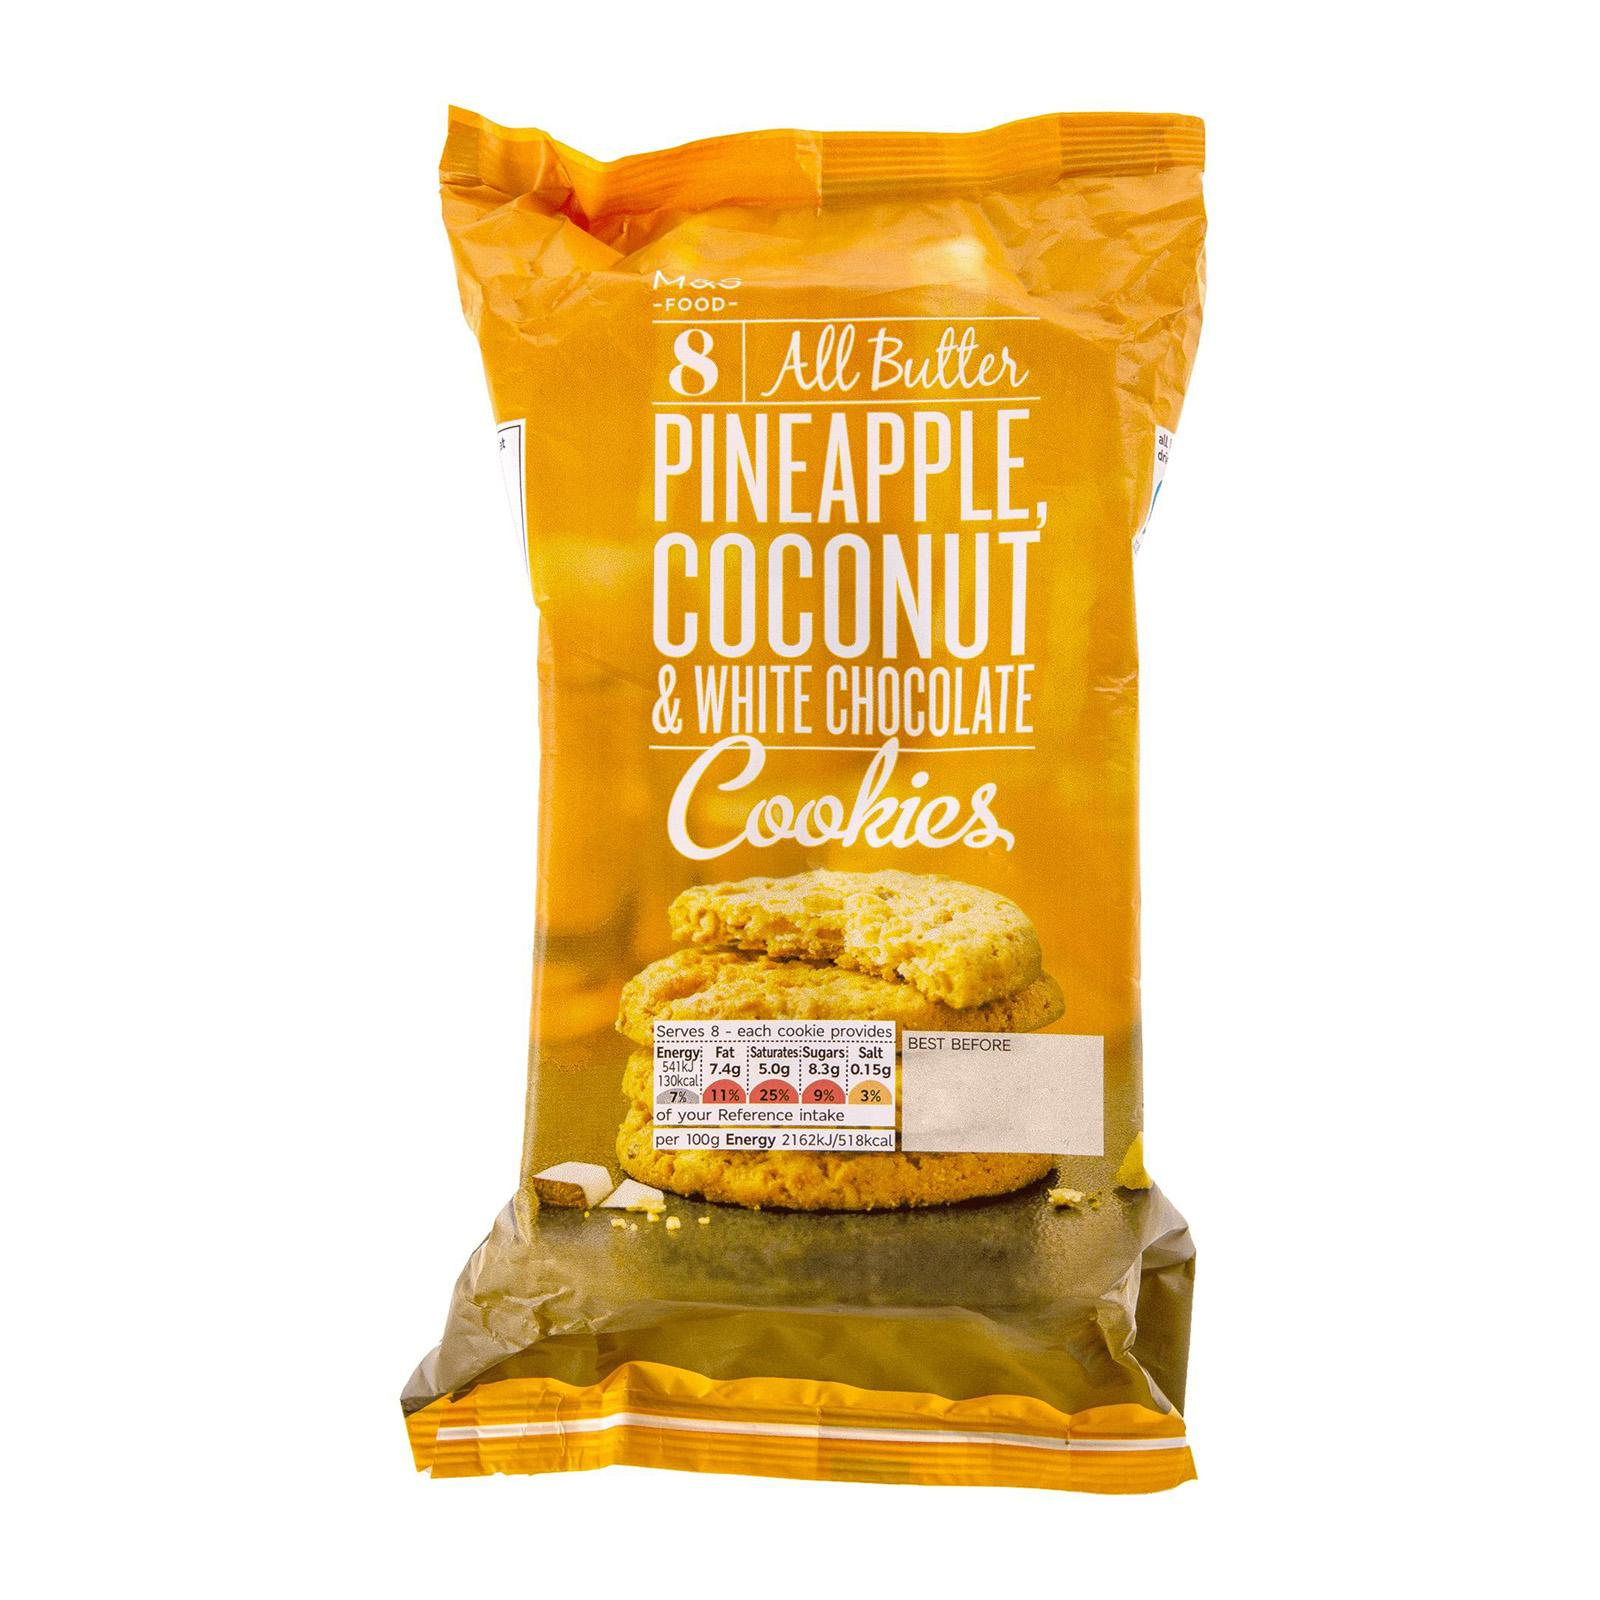 Marks & Spencer All Butter Pineapple Coconut and White Chocolate Cookies